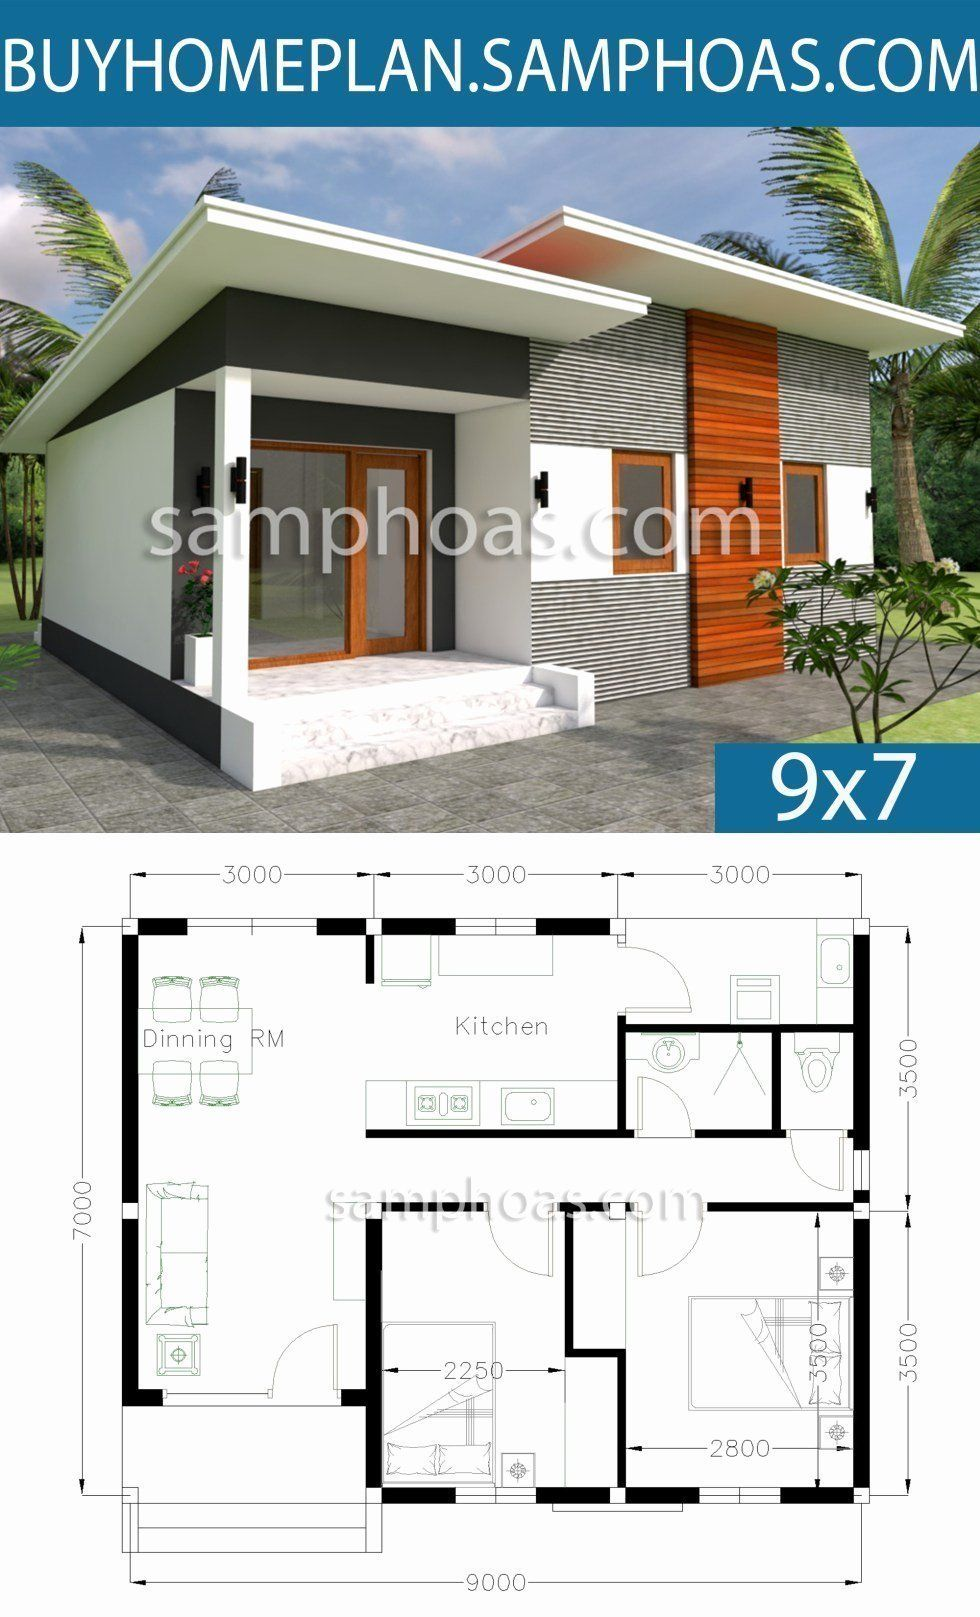 Small House Floor Plan Small House Floor Plans Bedroom House Plans Floor Plans Ranch